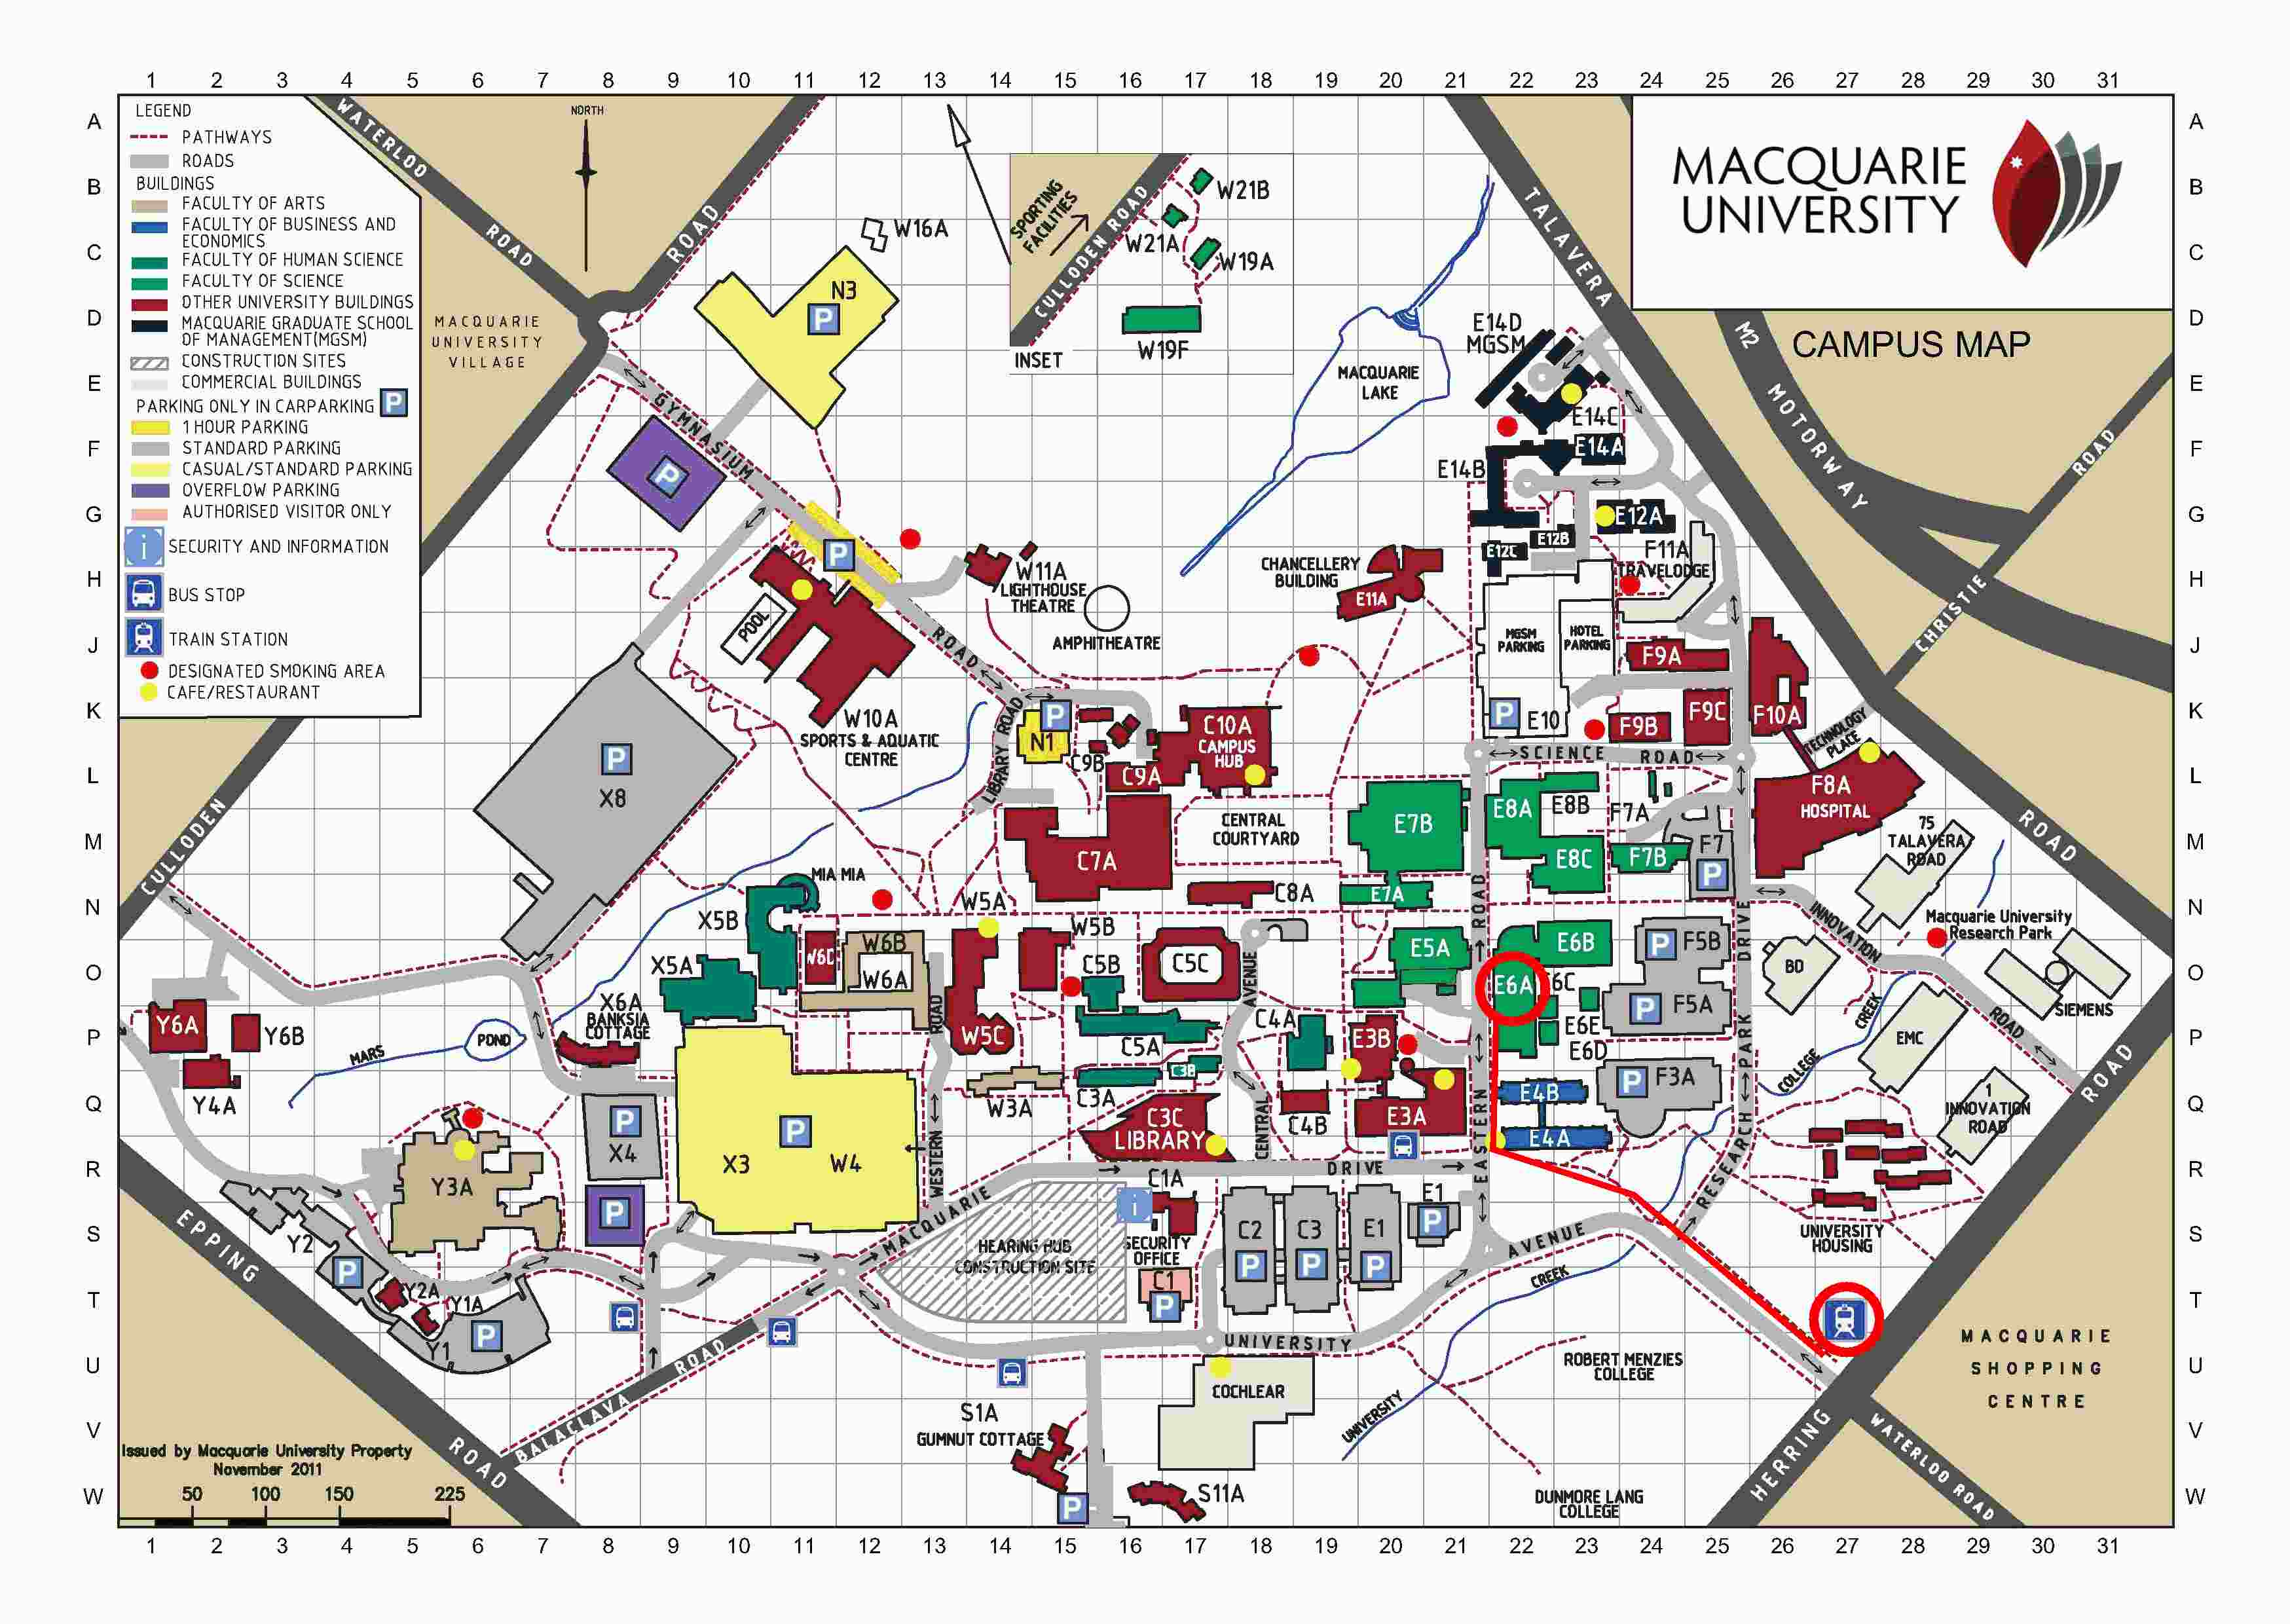 Macquarie University Map Contact information for Mark Johnson, Macquarie University Macquarie University Map